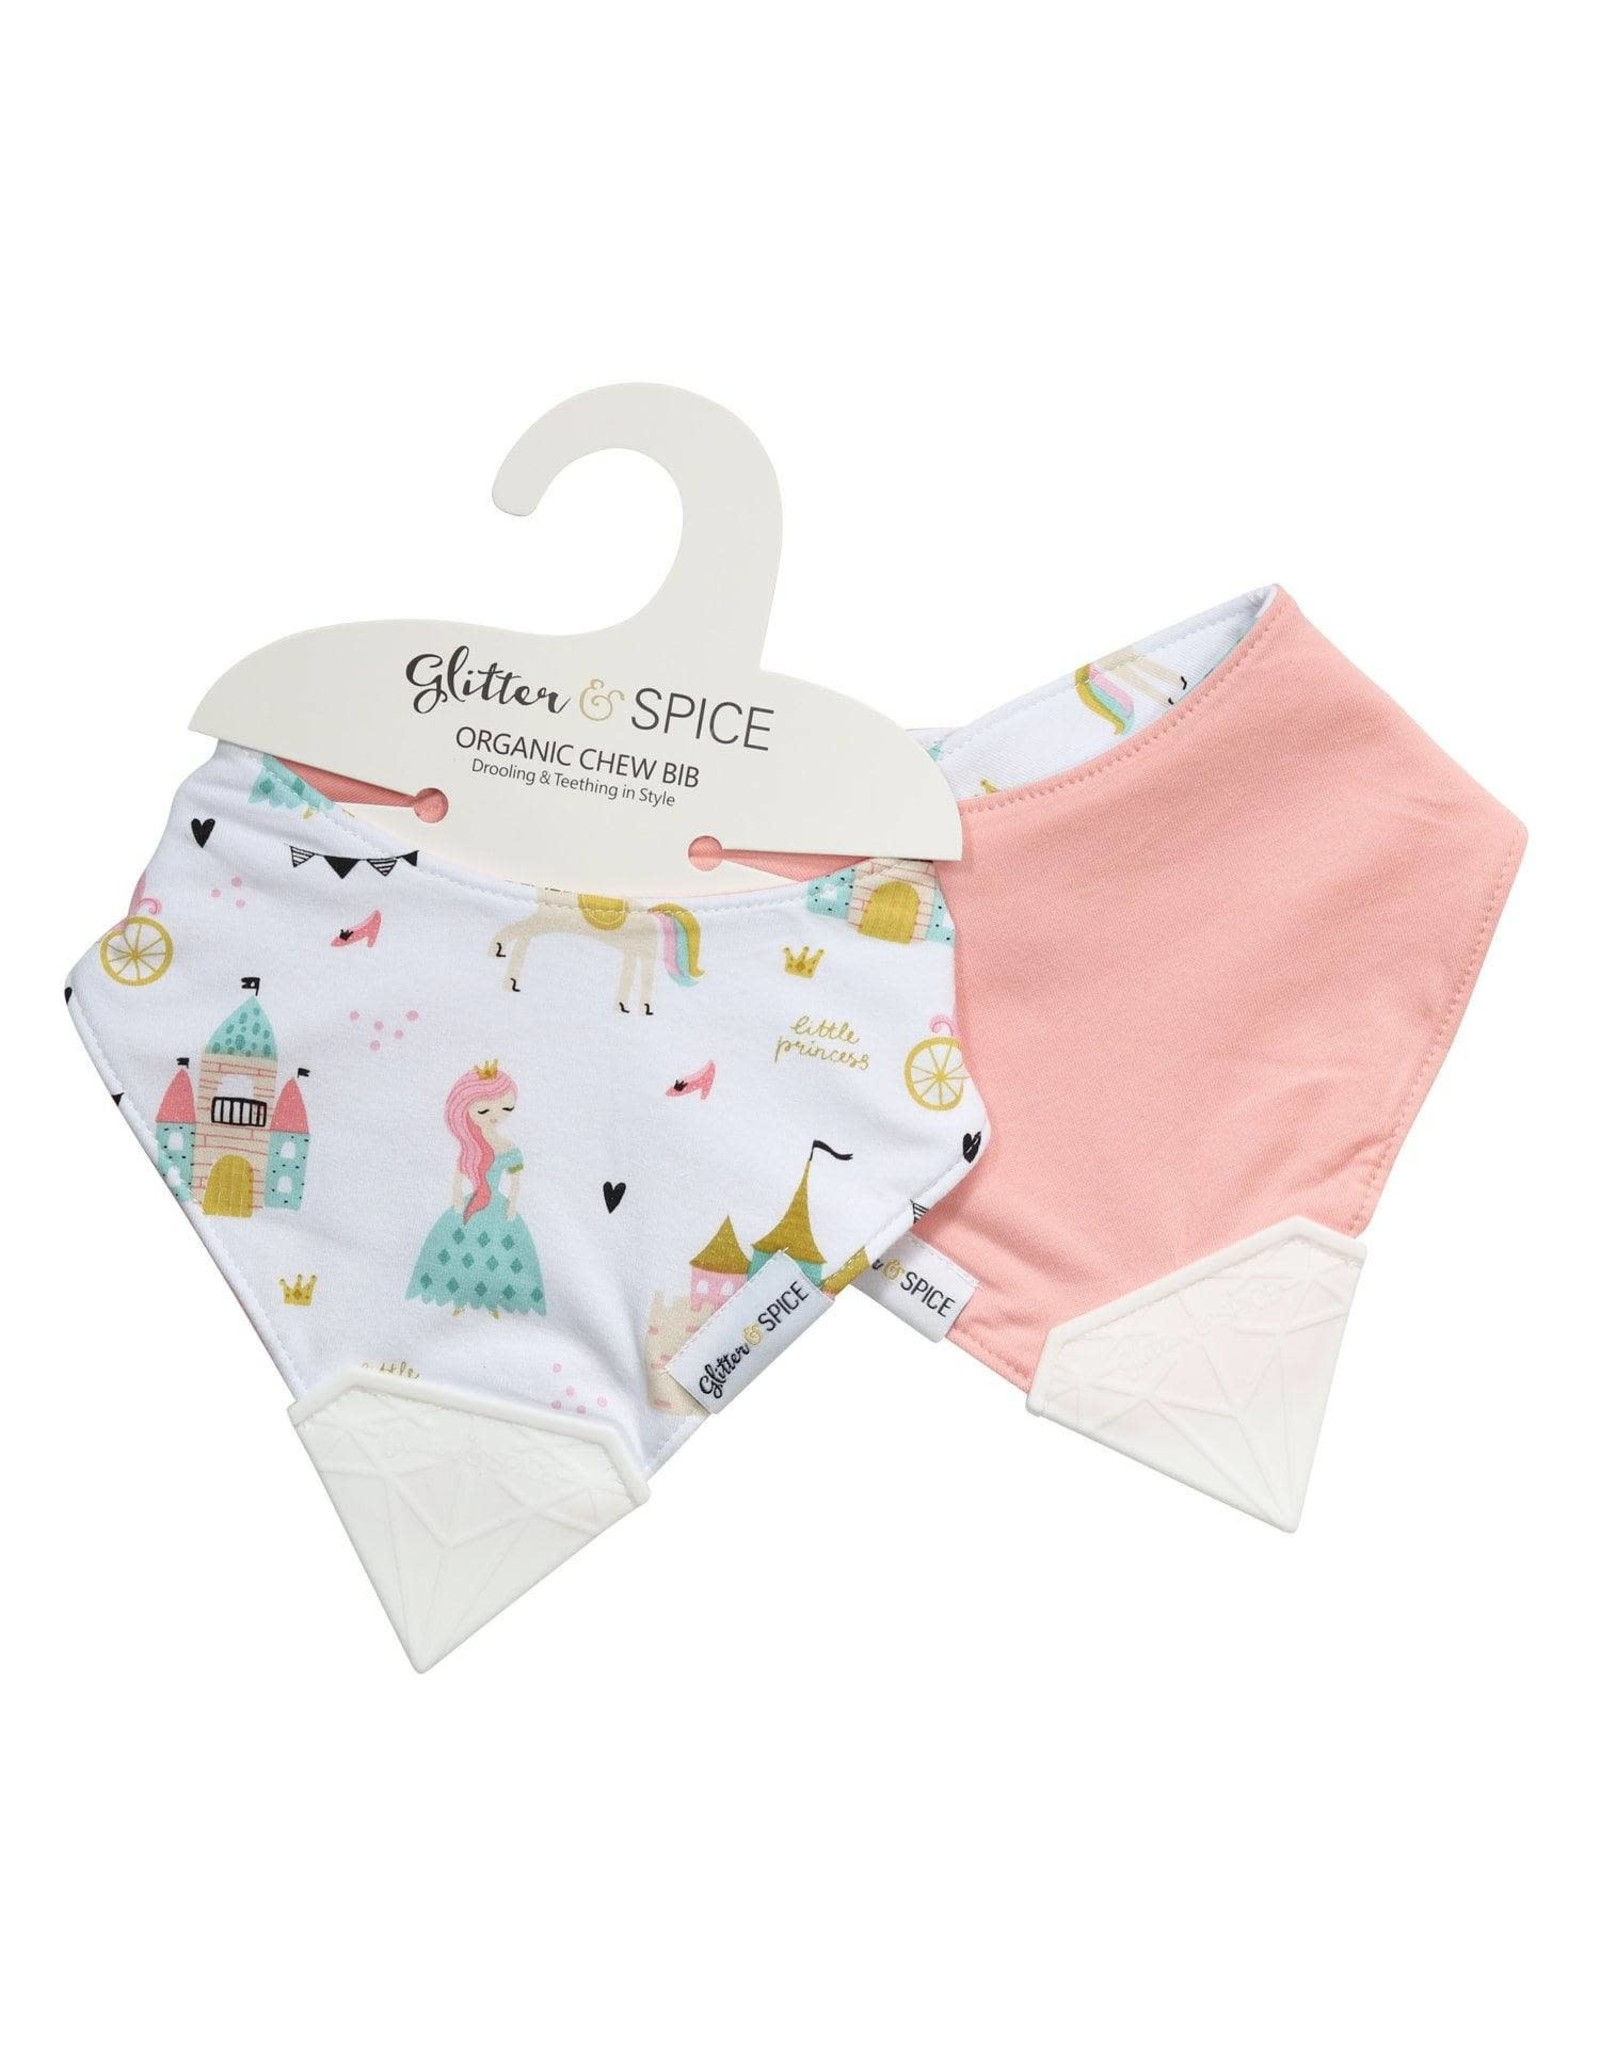 Glitter and Spice Double Sided Chew Bib, Enchanted Kingdom/Forever Pink